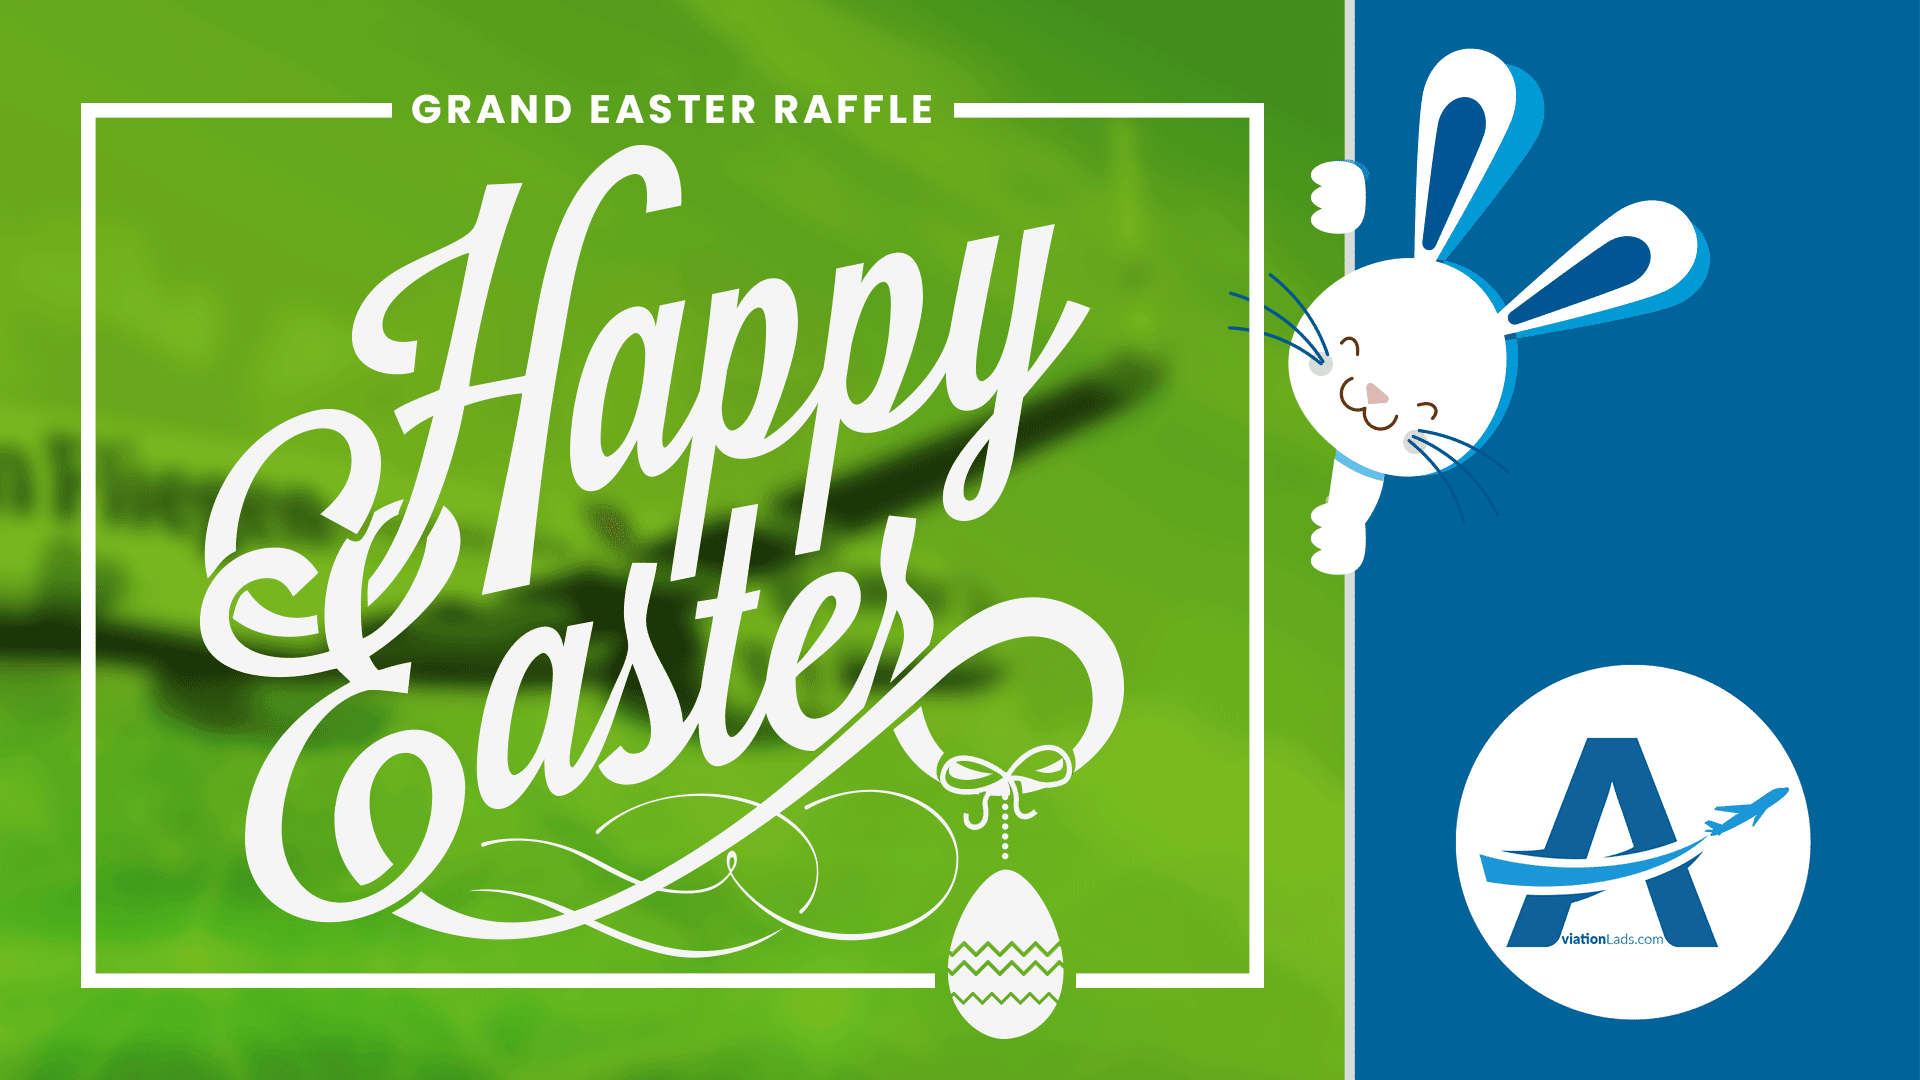 [CONTEST] GRAND EASTER RAFFLE 2020